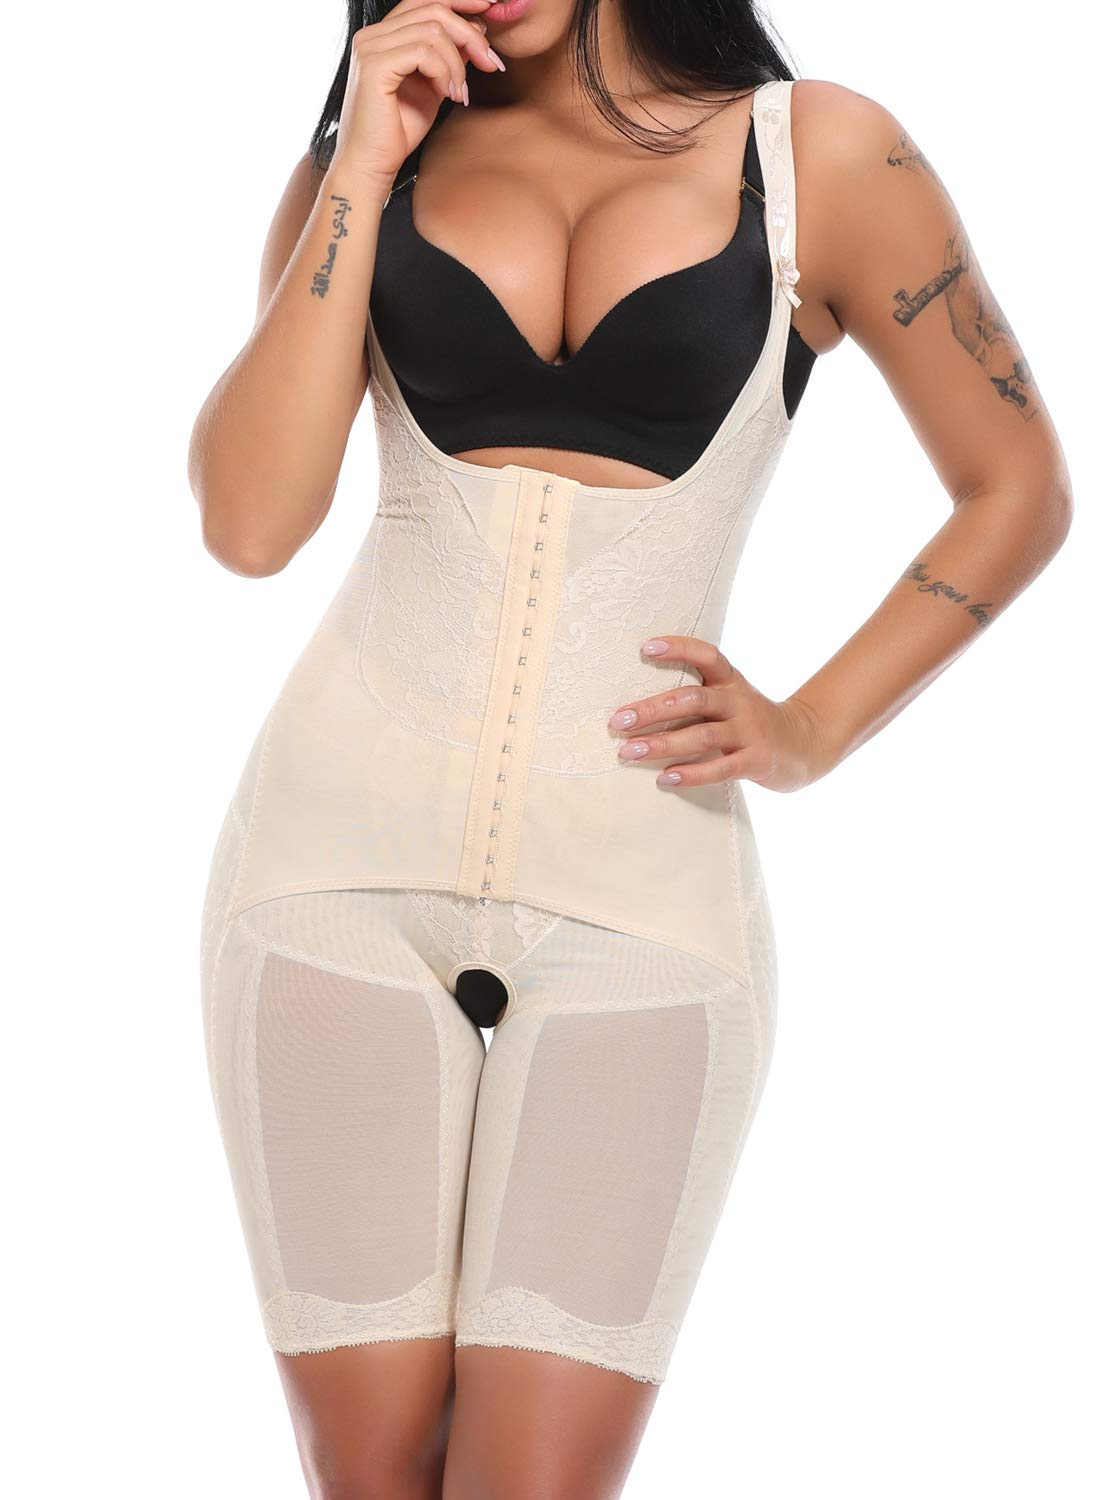 KIWI RATA Women's Open Bust Full Body Shaper Waist Trainer Girdle Mid Thigh Reducer Bodysuit Slimmer Tummy Control Shapewear